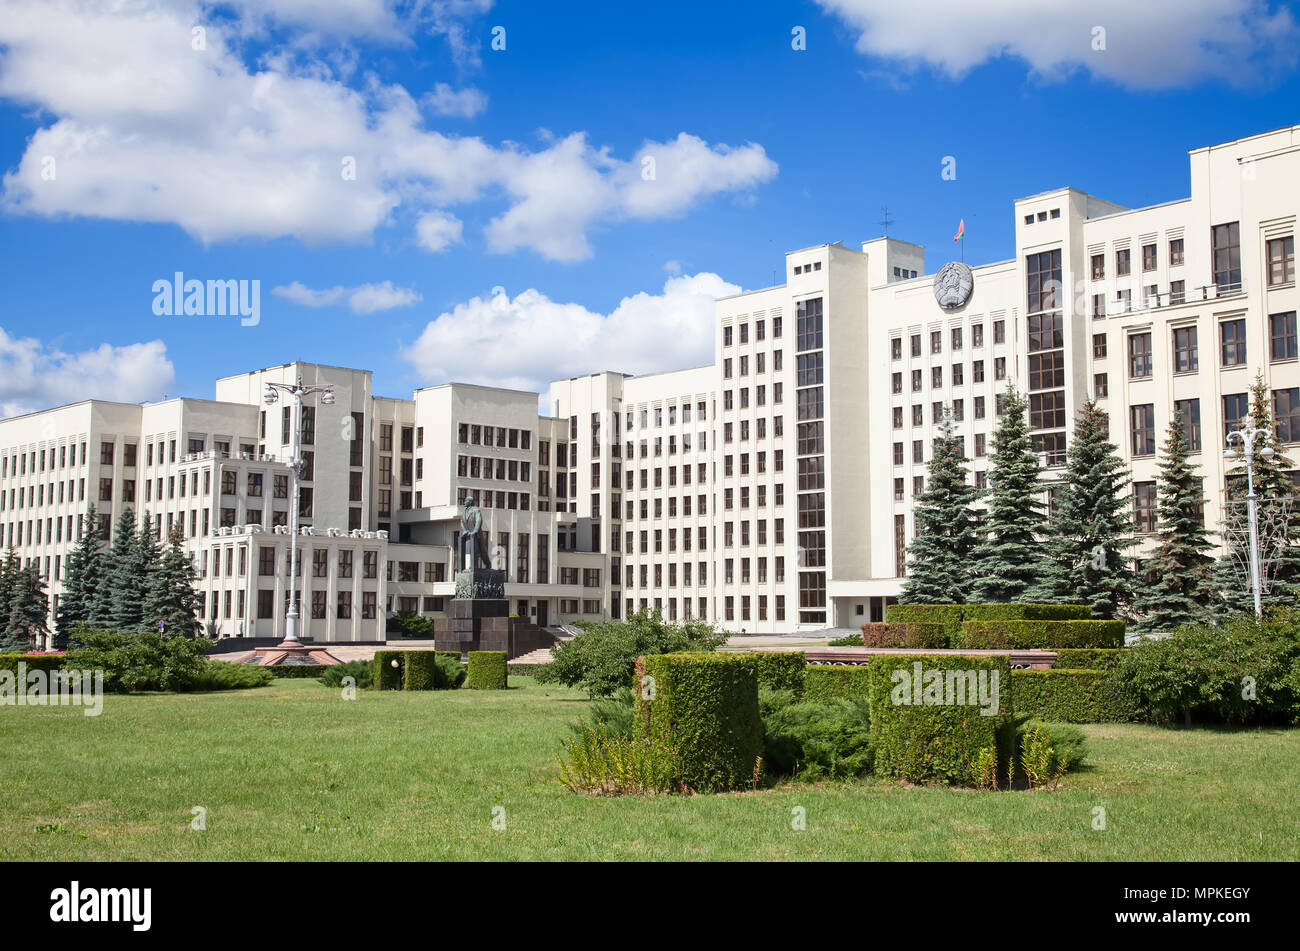 Parliament building on the Independence square in Minsk. Belarus - Stock Image